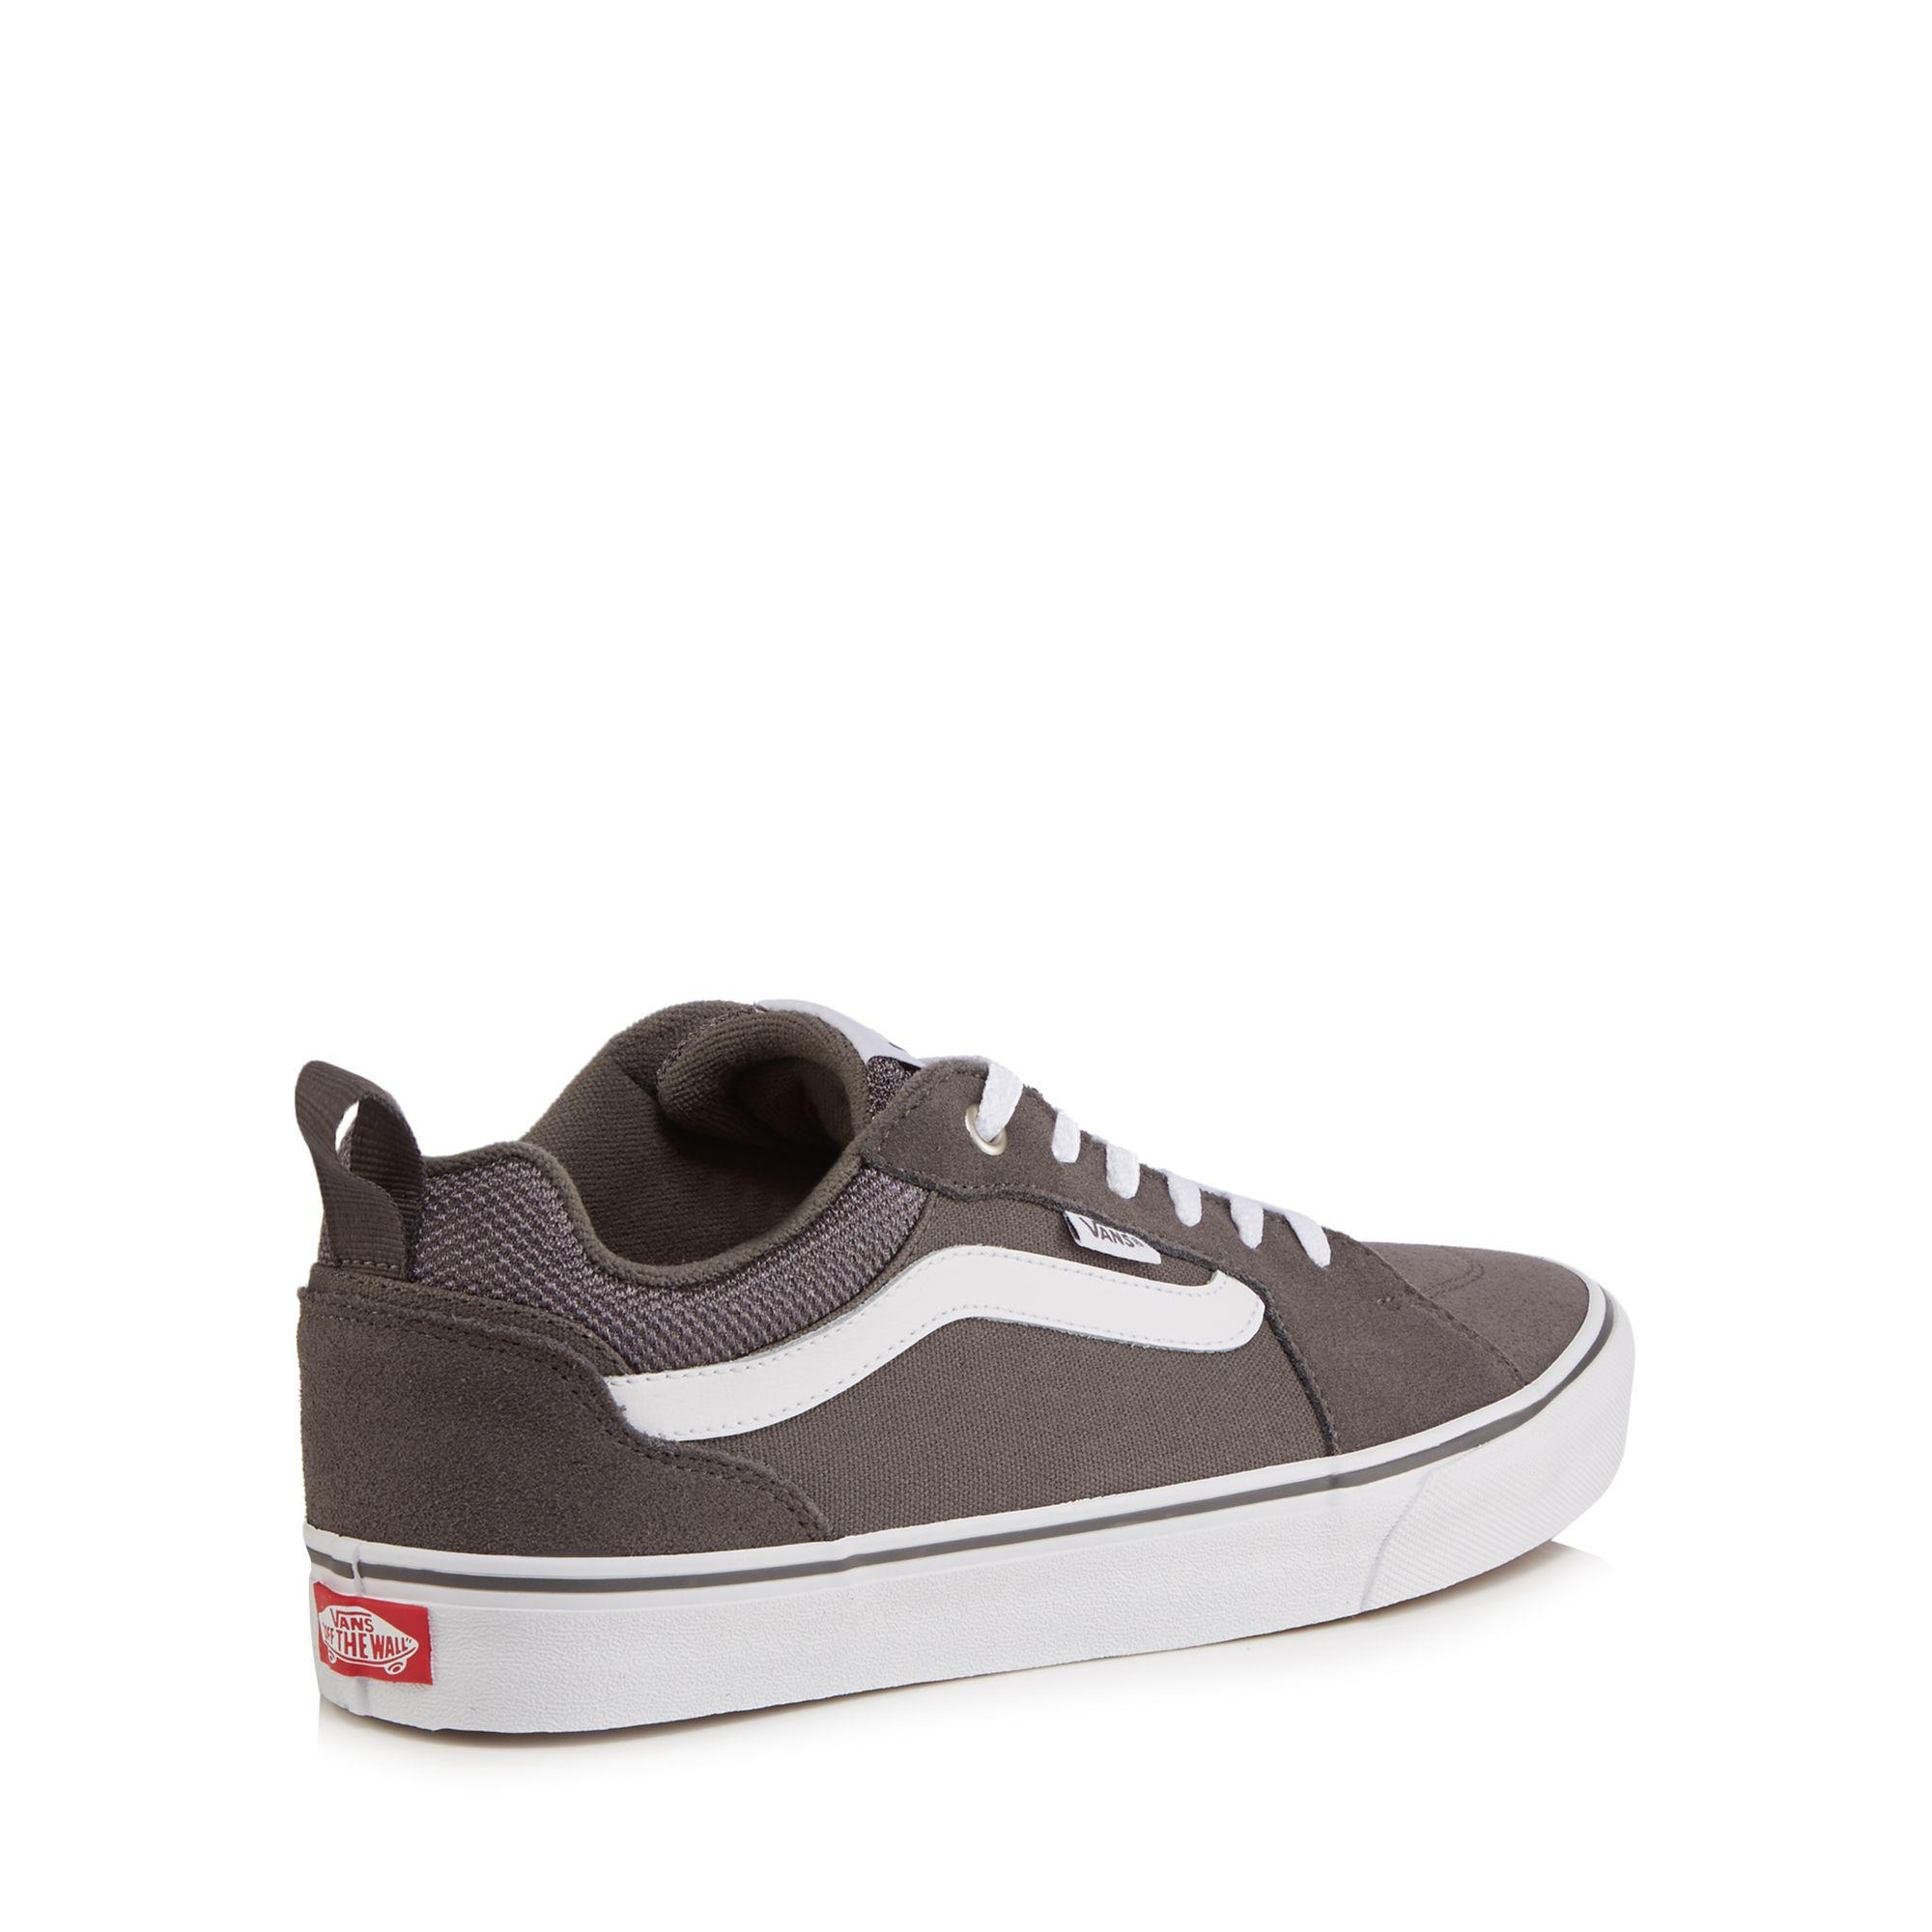 Grey 'Filmore' lace up trainers sale best wholesale clearance supply cheap real finishline wholesale price for sale shopping online cheap price 5h6YV